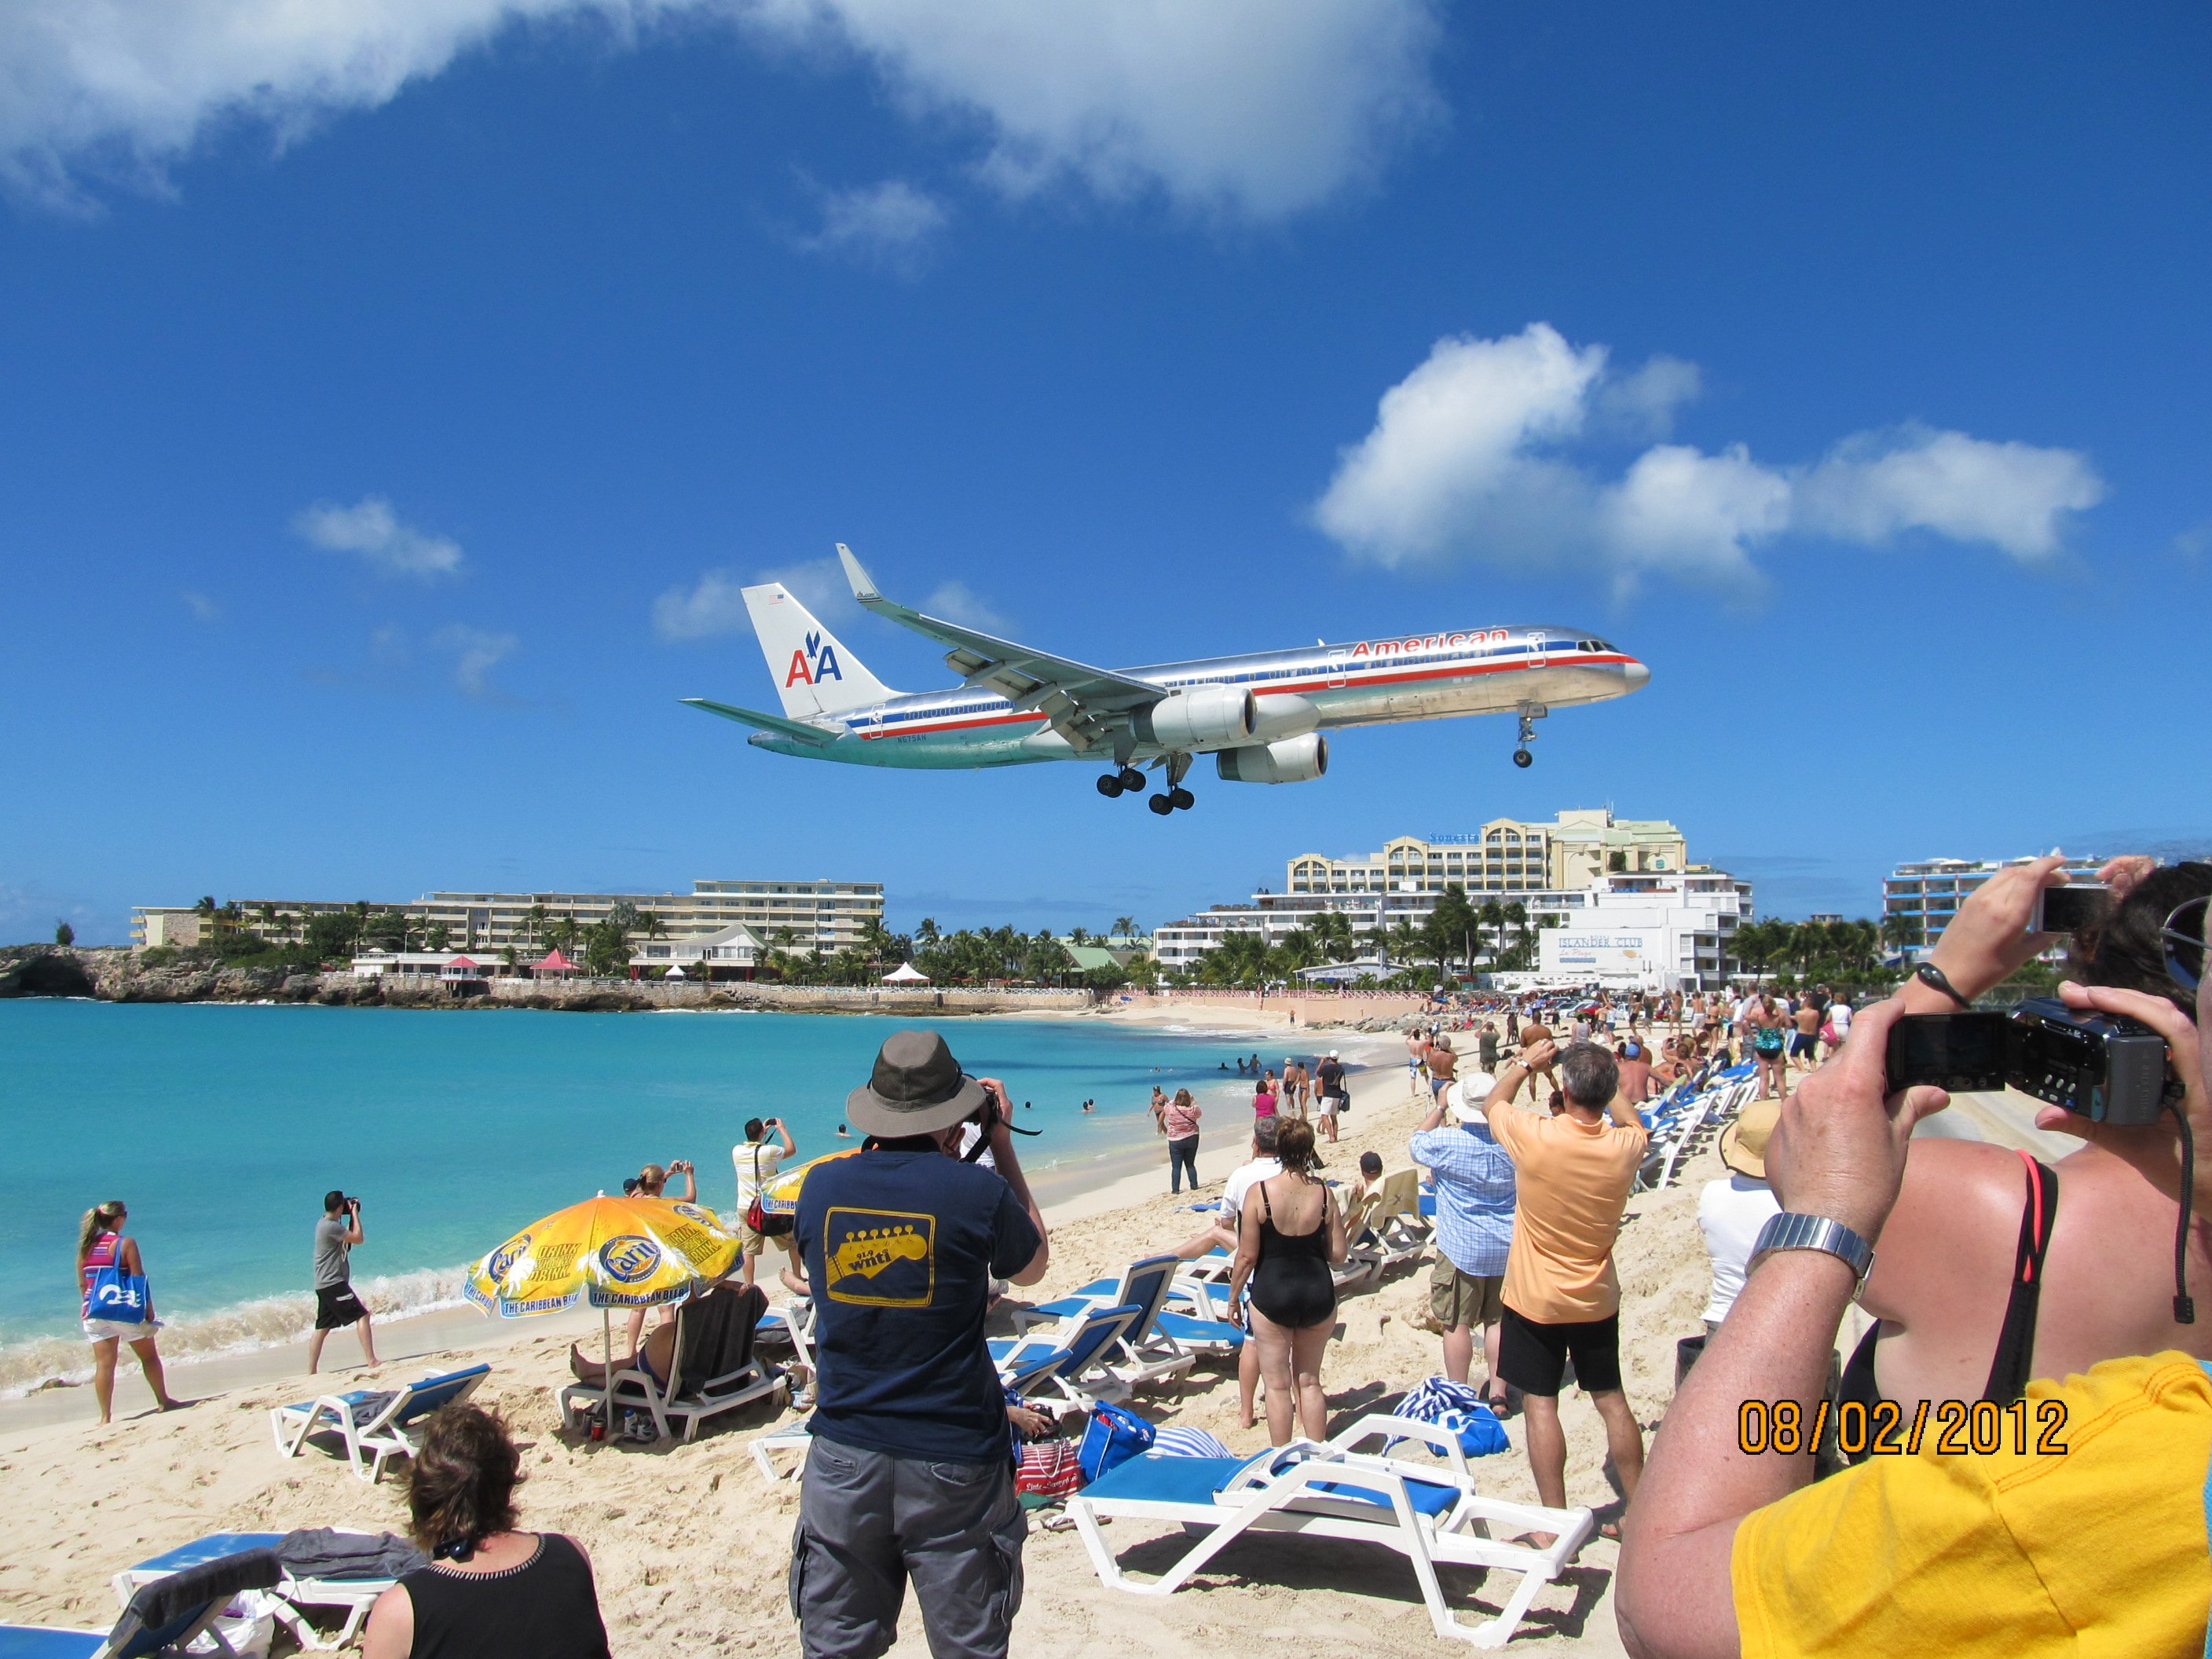 Plane Spotting in St. Maarten: An Insanely Memorable Stopover